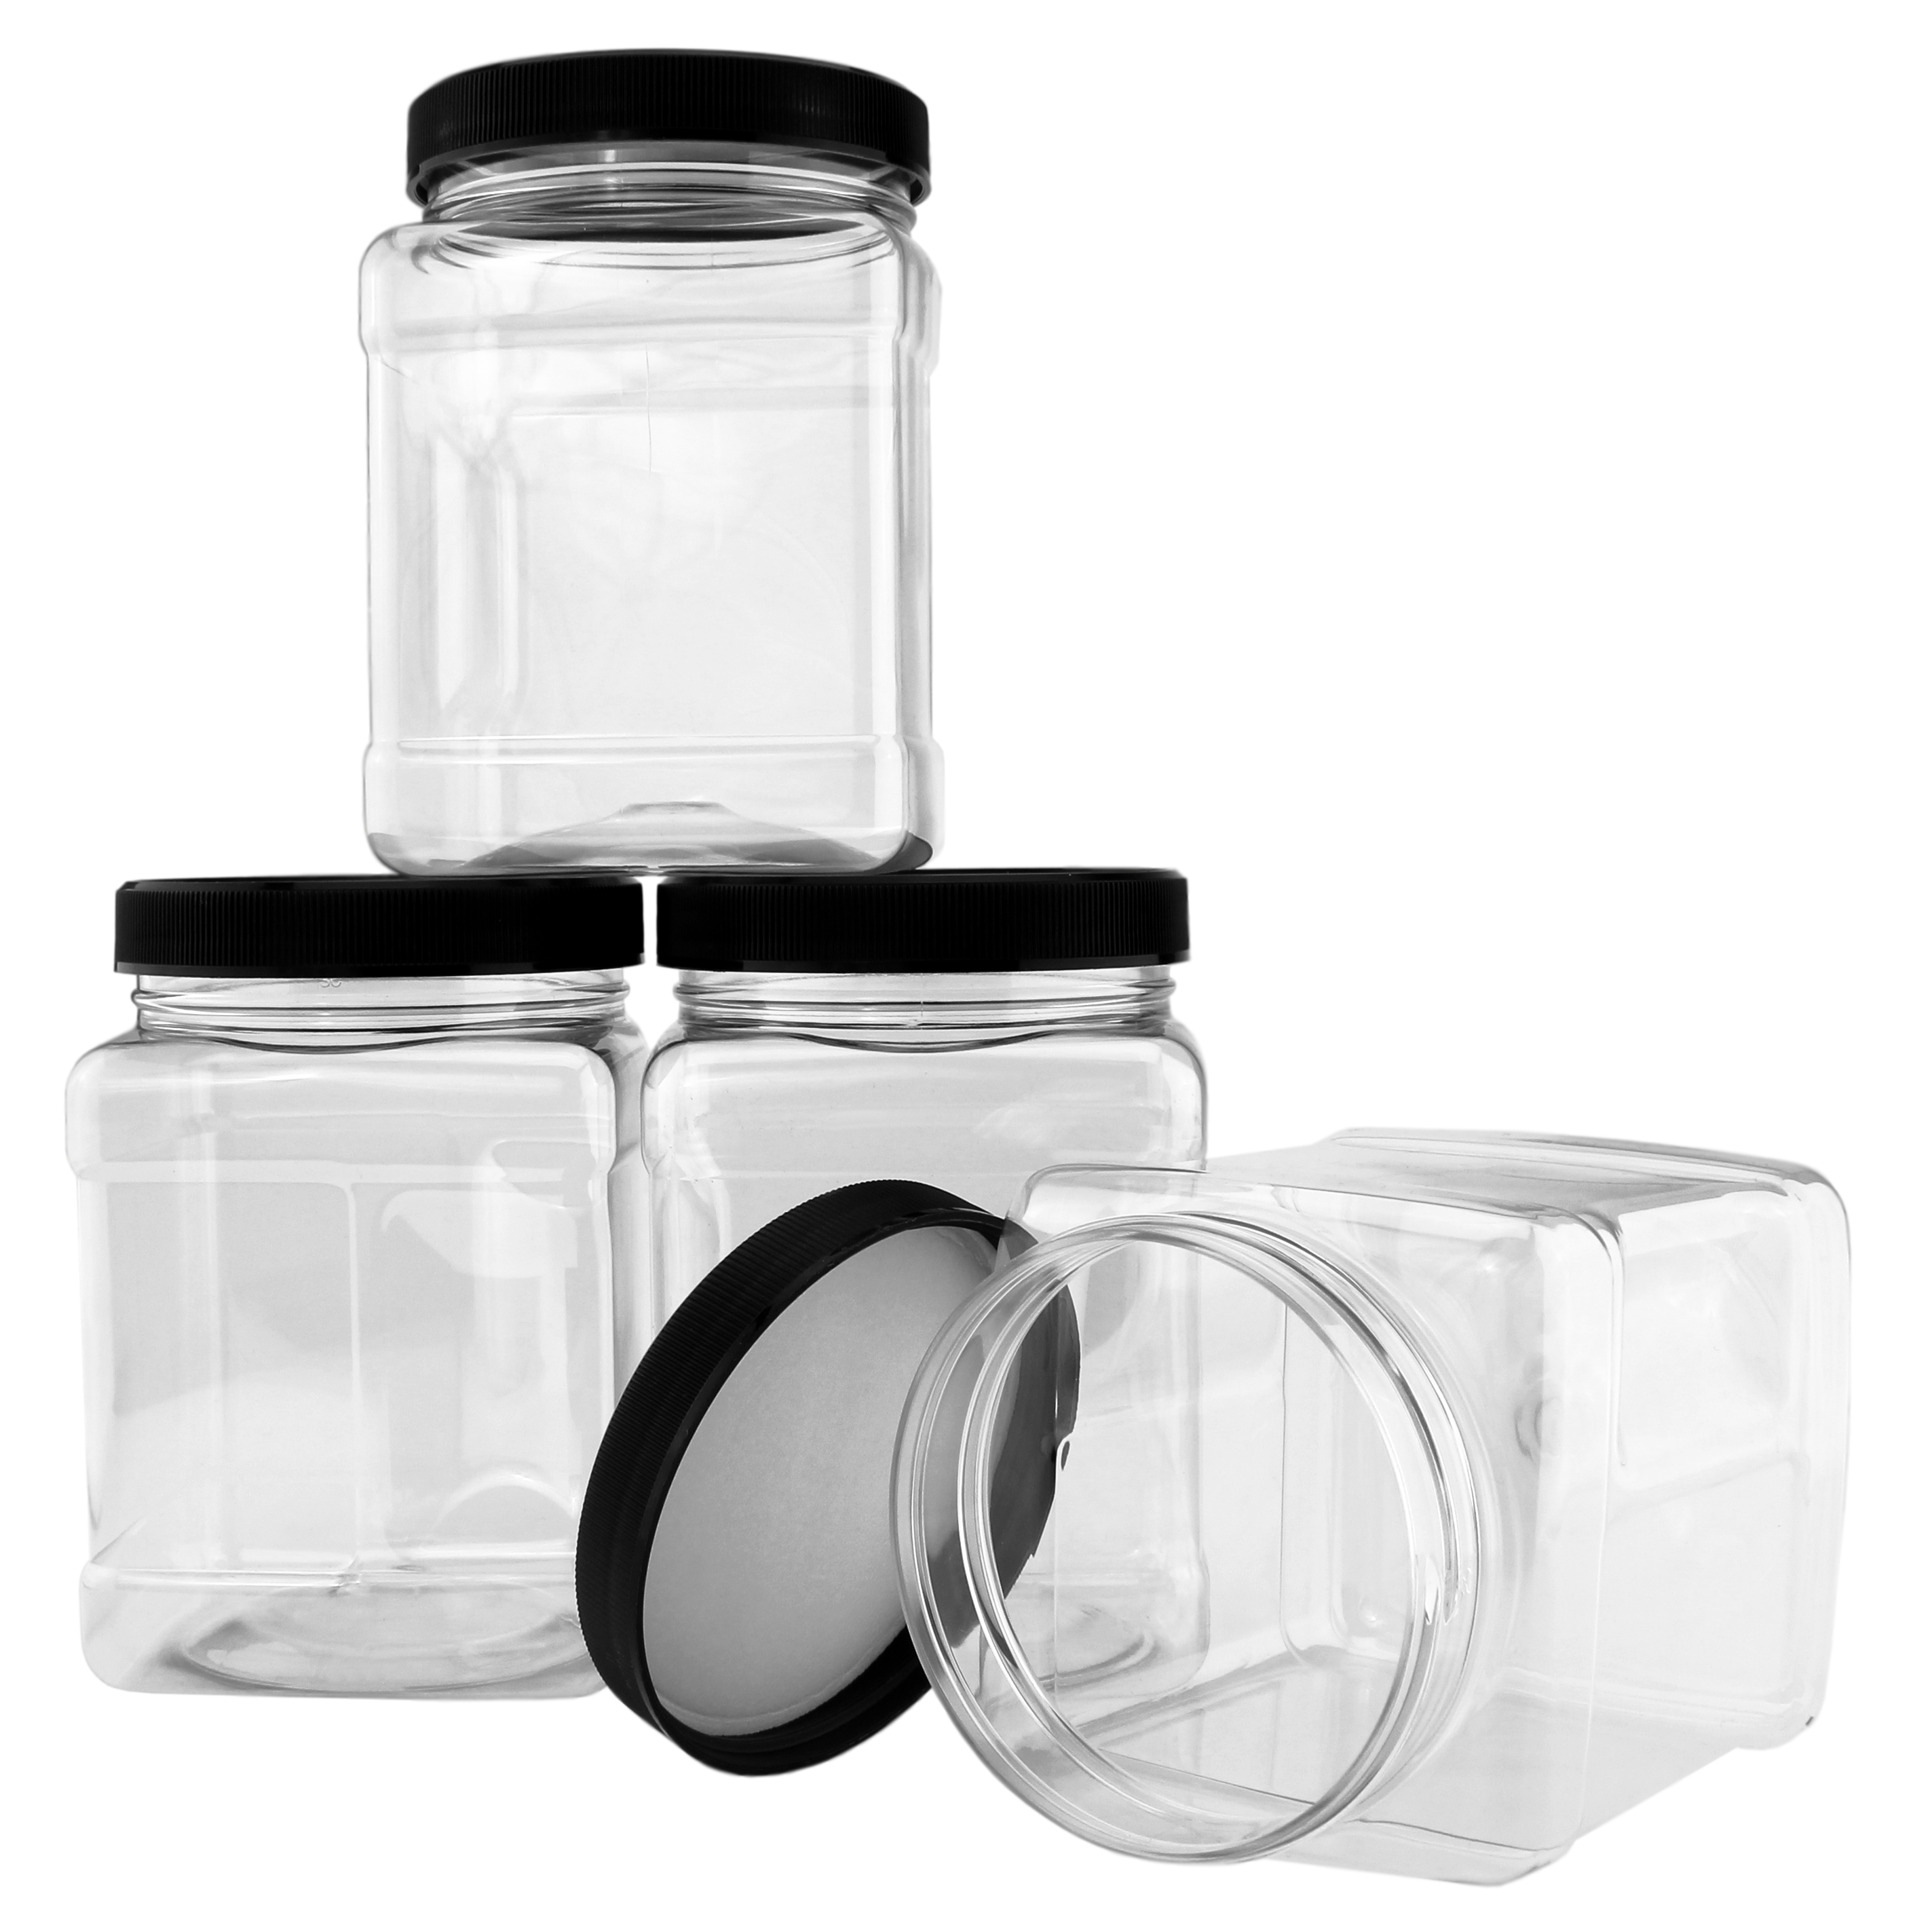 B078SF8L4D - 32-Ounce Square Plastic Jars (4-Pack) 3